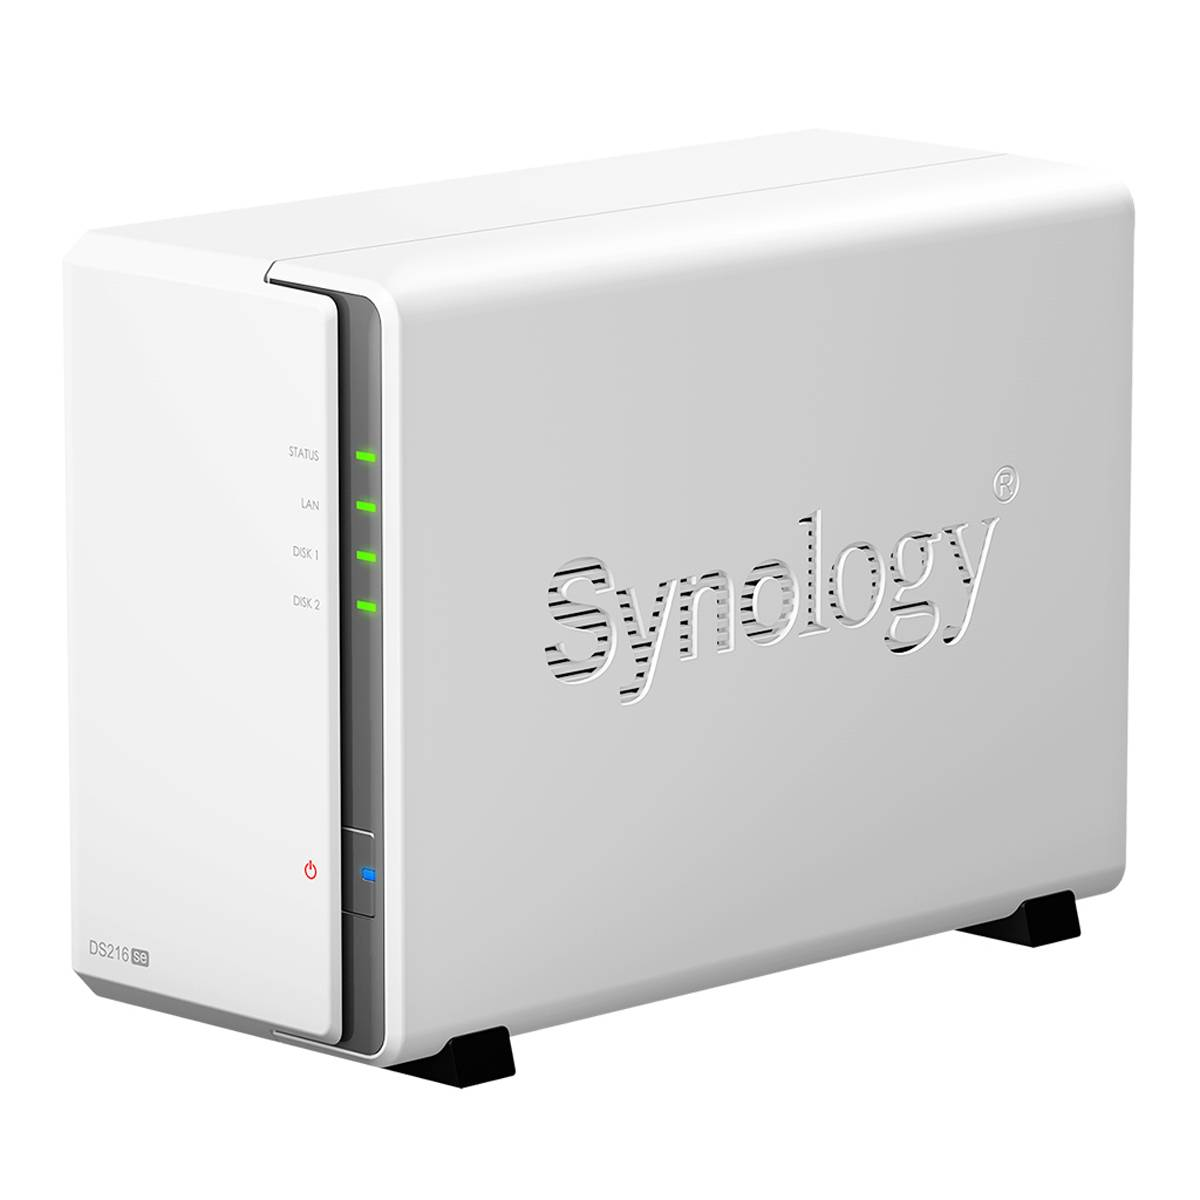 SYNOLOGY - NAS DT Synology Ds216se Nas Scrivania Collegamento Ethernet Lan Bianco Server Nas E Di Archiviazione 4711174722068 Ds216se 10_z660810